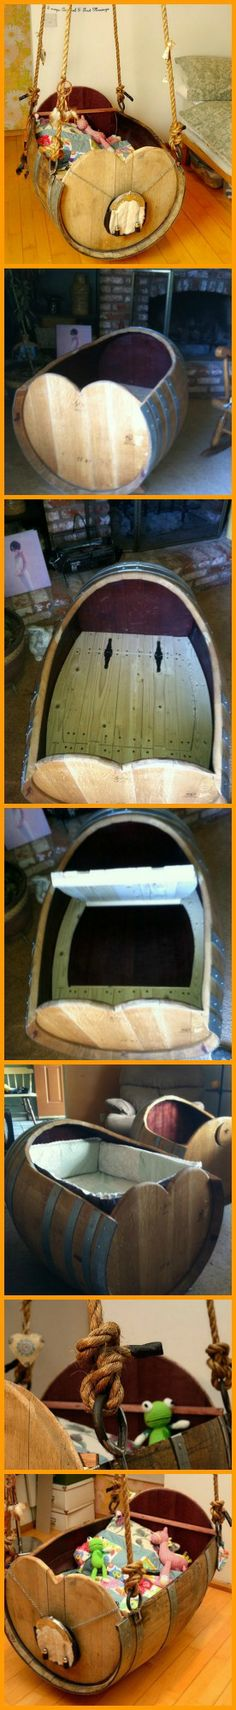 Another way to repurpose a wine barrel! http://theownerbuildernetwork.co/6eo7